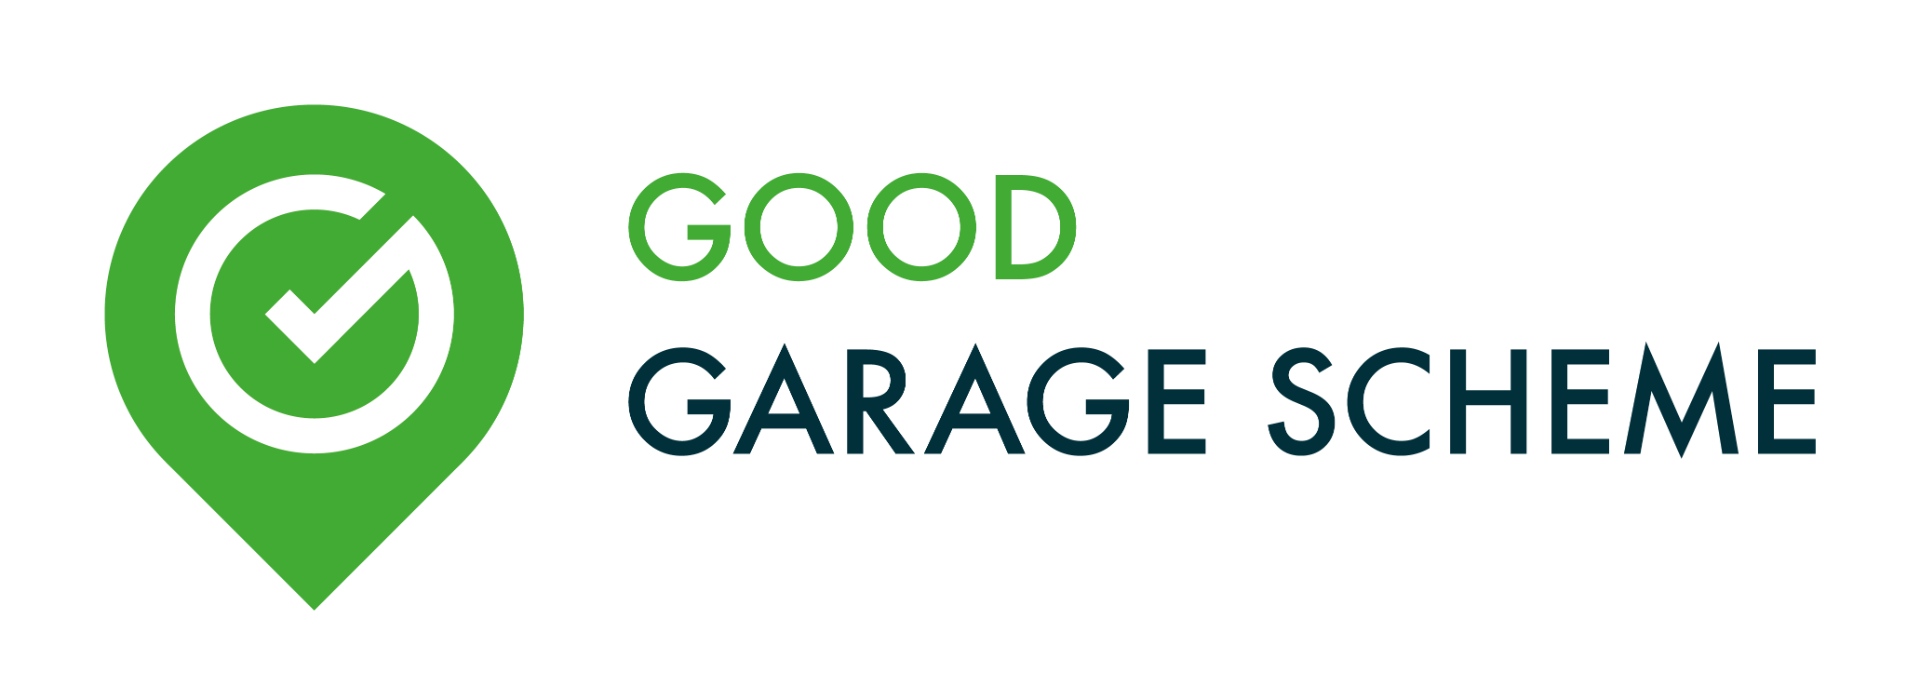 Good Garage Scheme - Servicing & Repairs Ayr